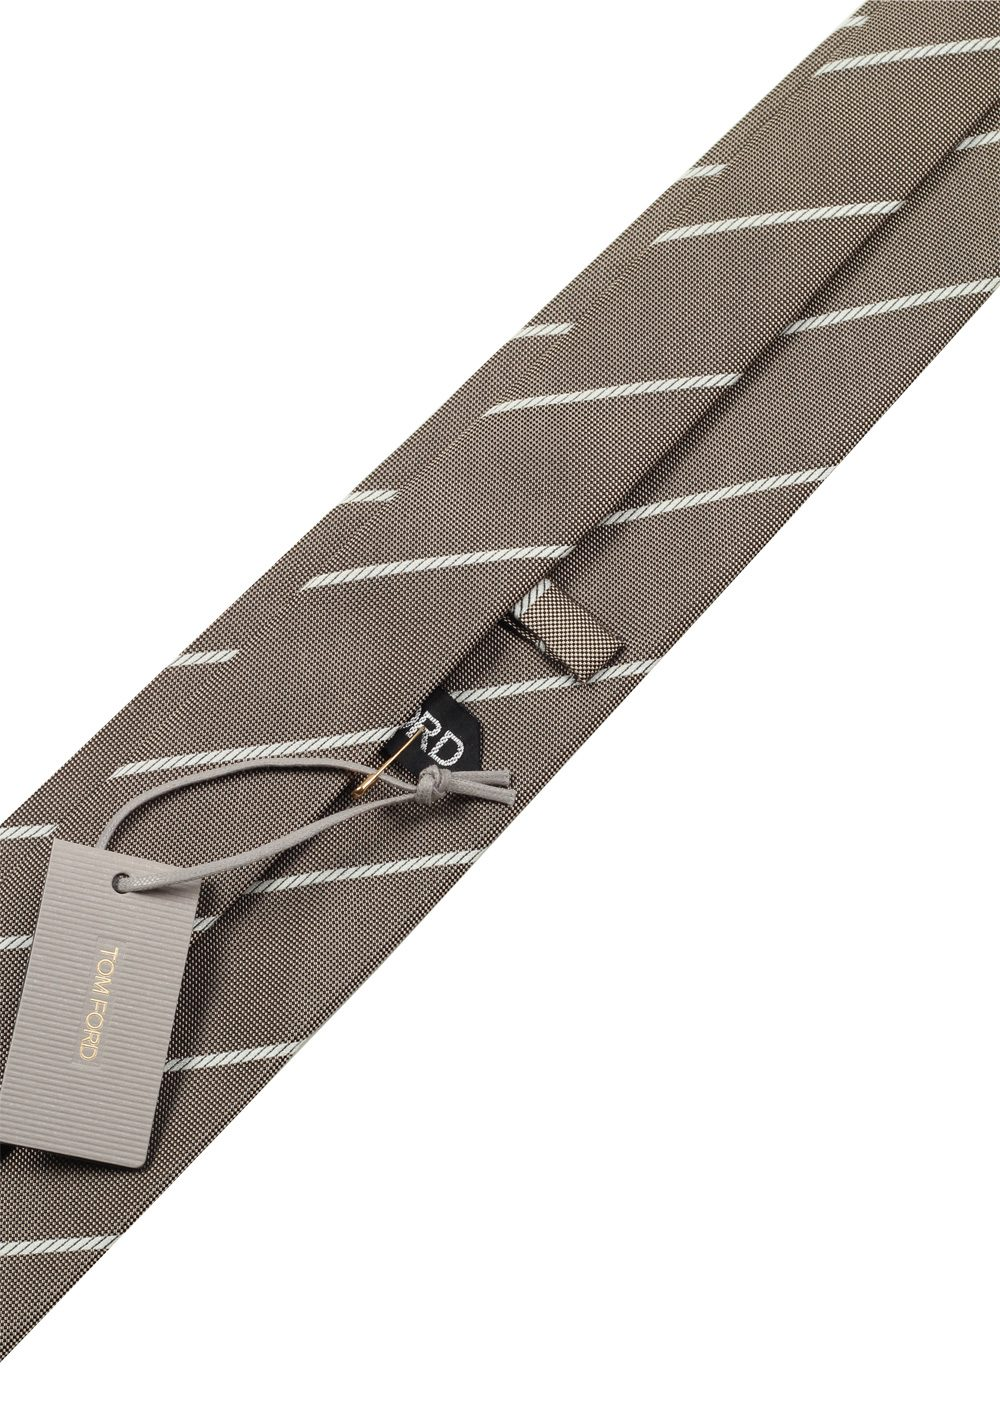 TOM FORD Patterned Brownish gray Tie In Silk | Costume Limité